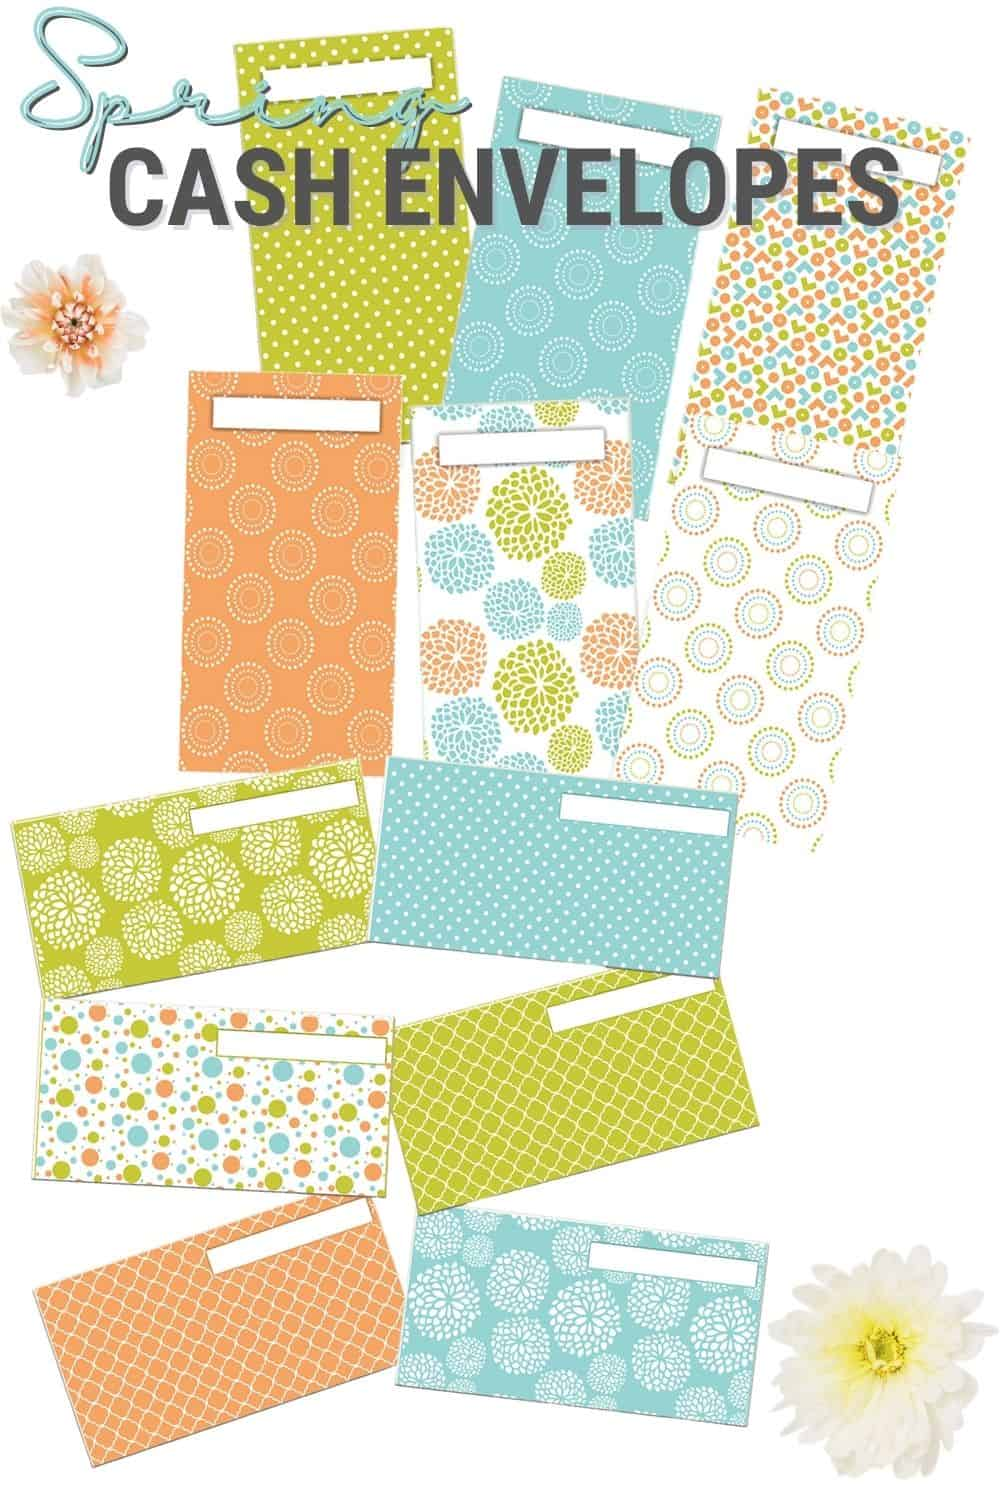 Check out the latest Easter and Spring cash envelopes and trackers collections from the Cash Envelope Templates shop. #cashenvelopes #printables #cashenvelopebudgeting via @mystayathome